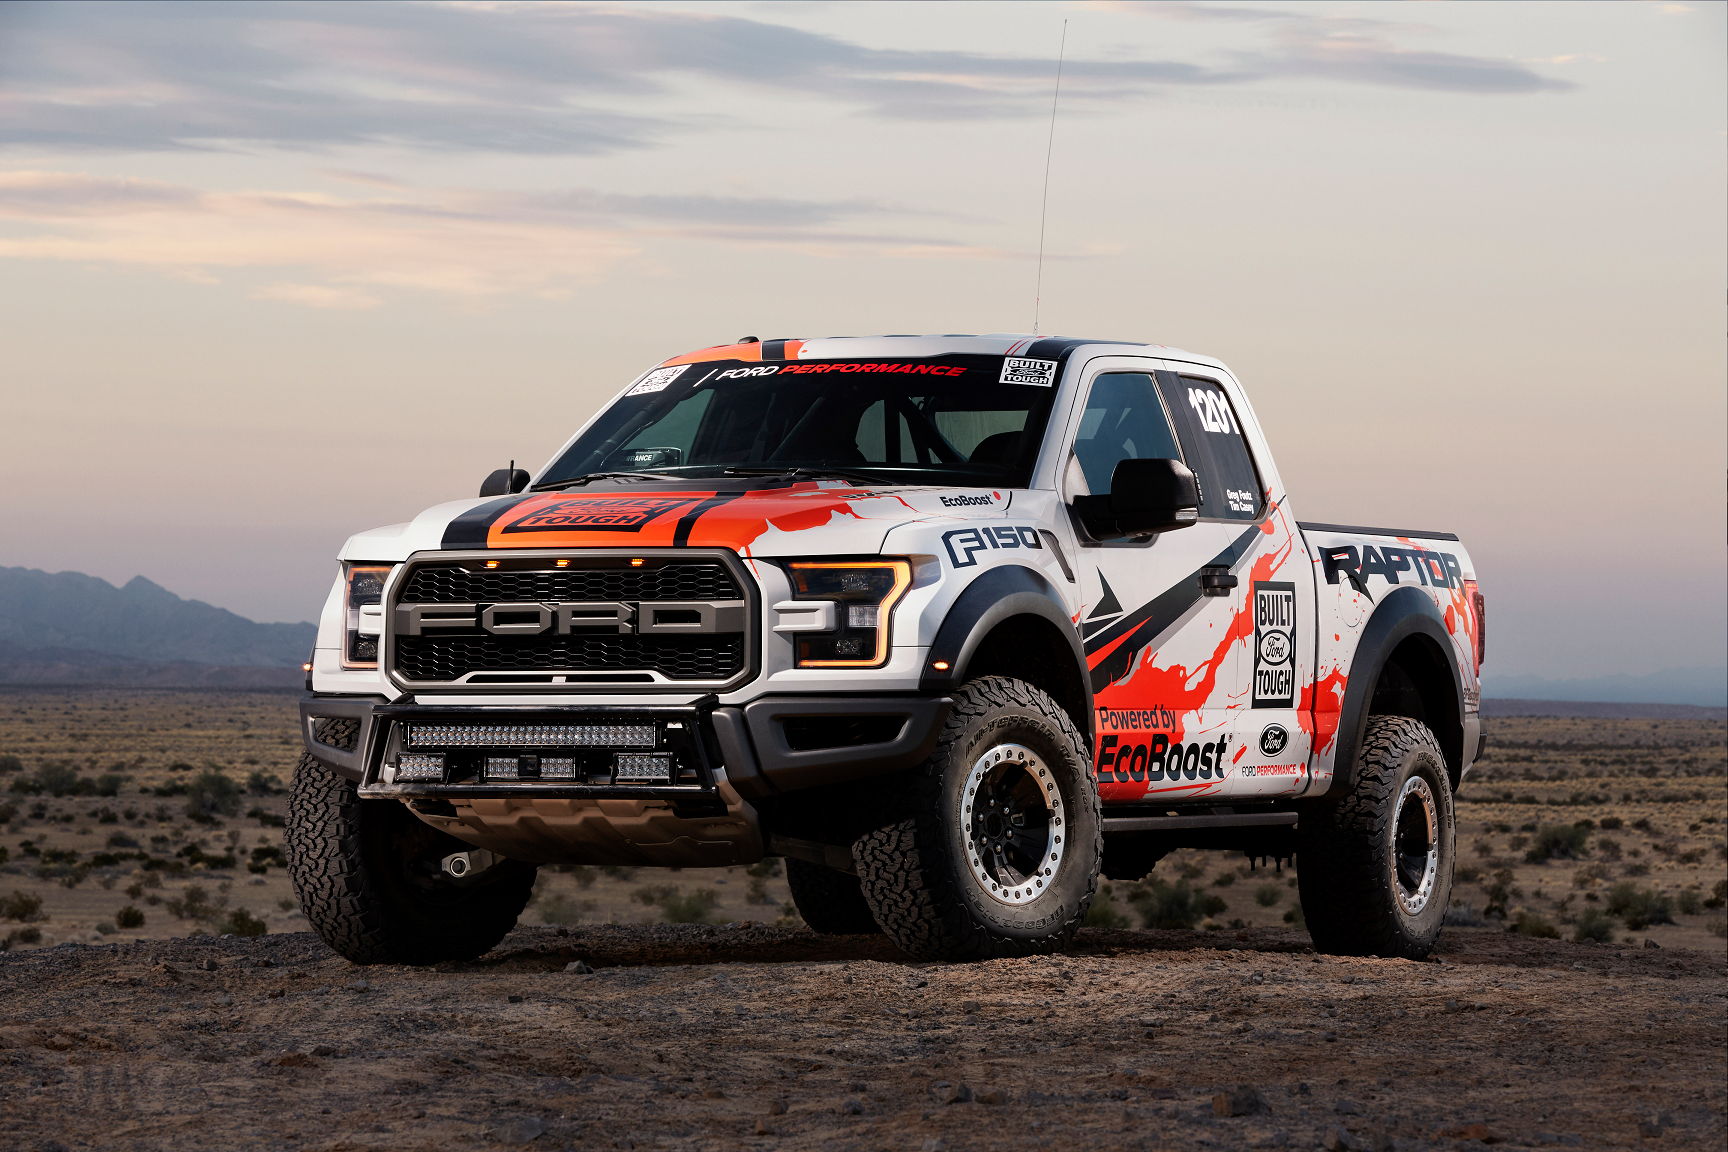 Off-Road Racing Championship Raptor